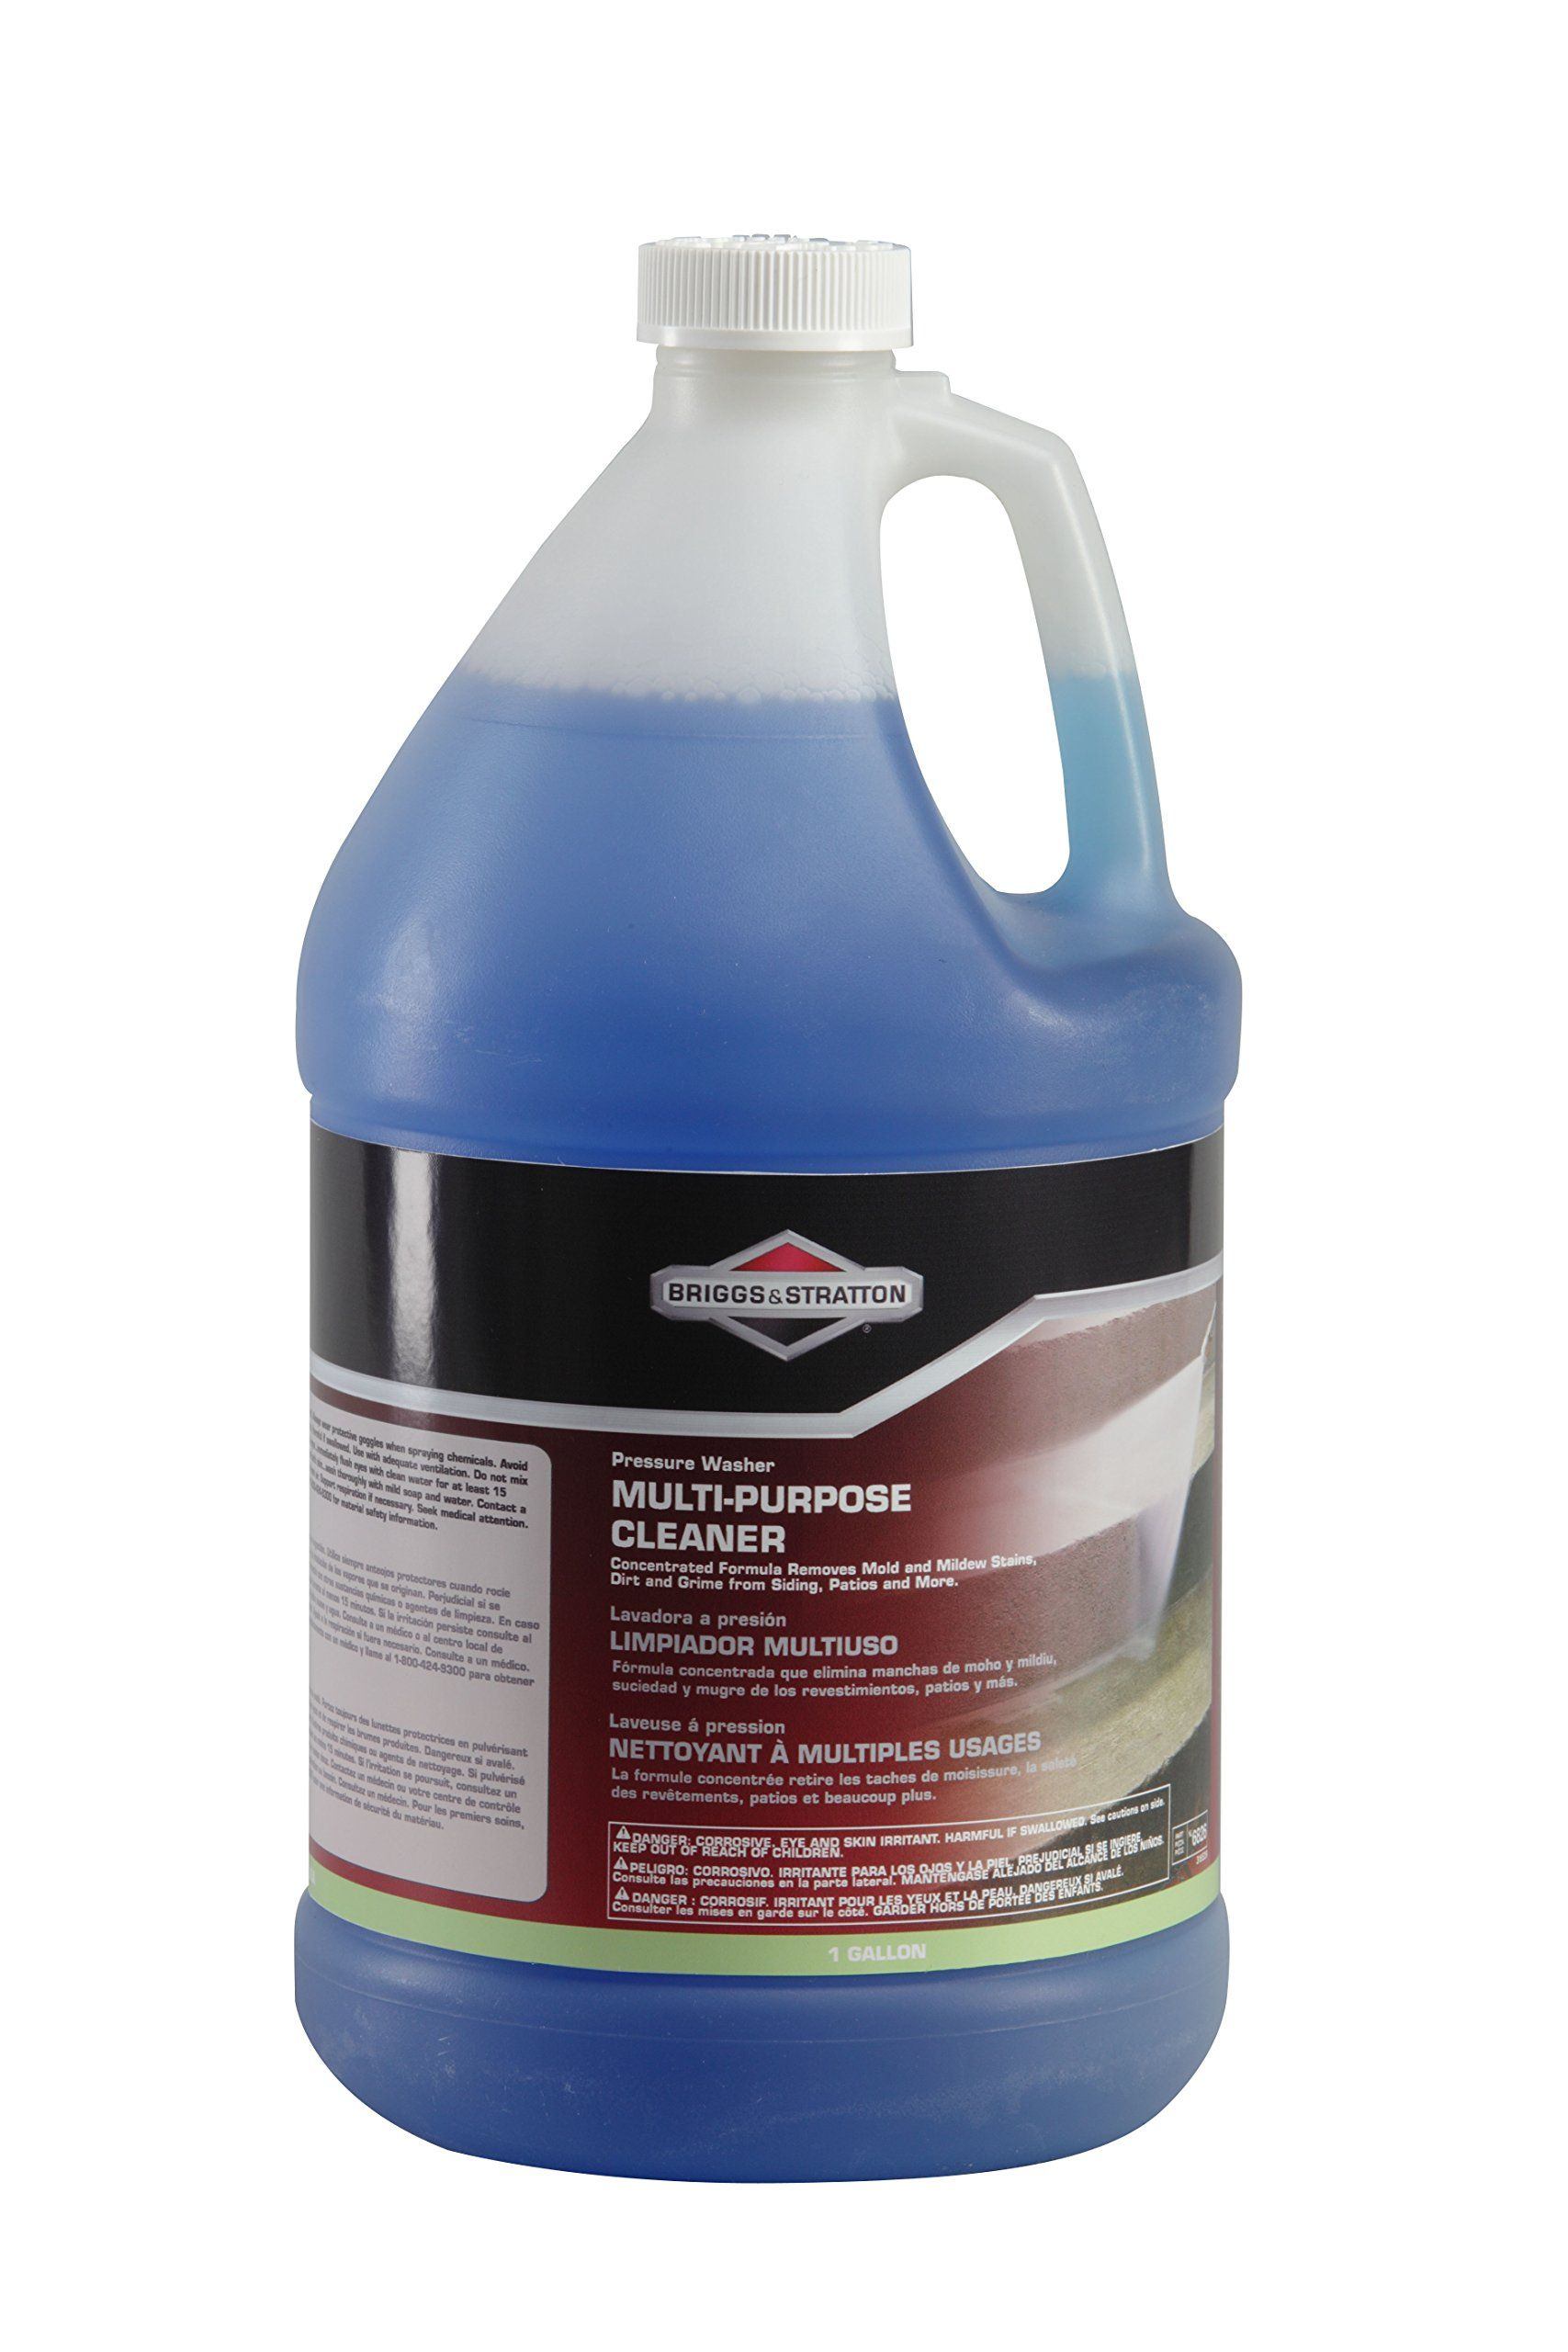 Best Pressure Washer Detergent For Cars More Best Pressure Washer Multipurpose Cleaner Detergent Soap